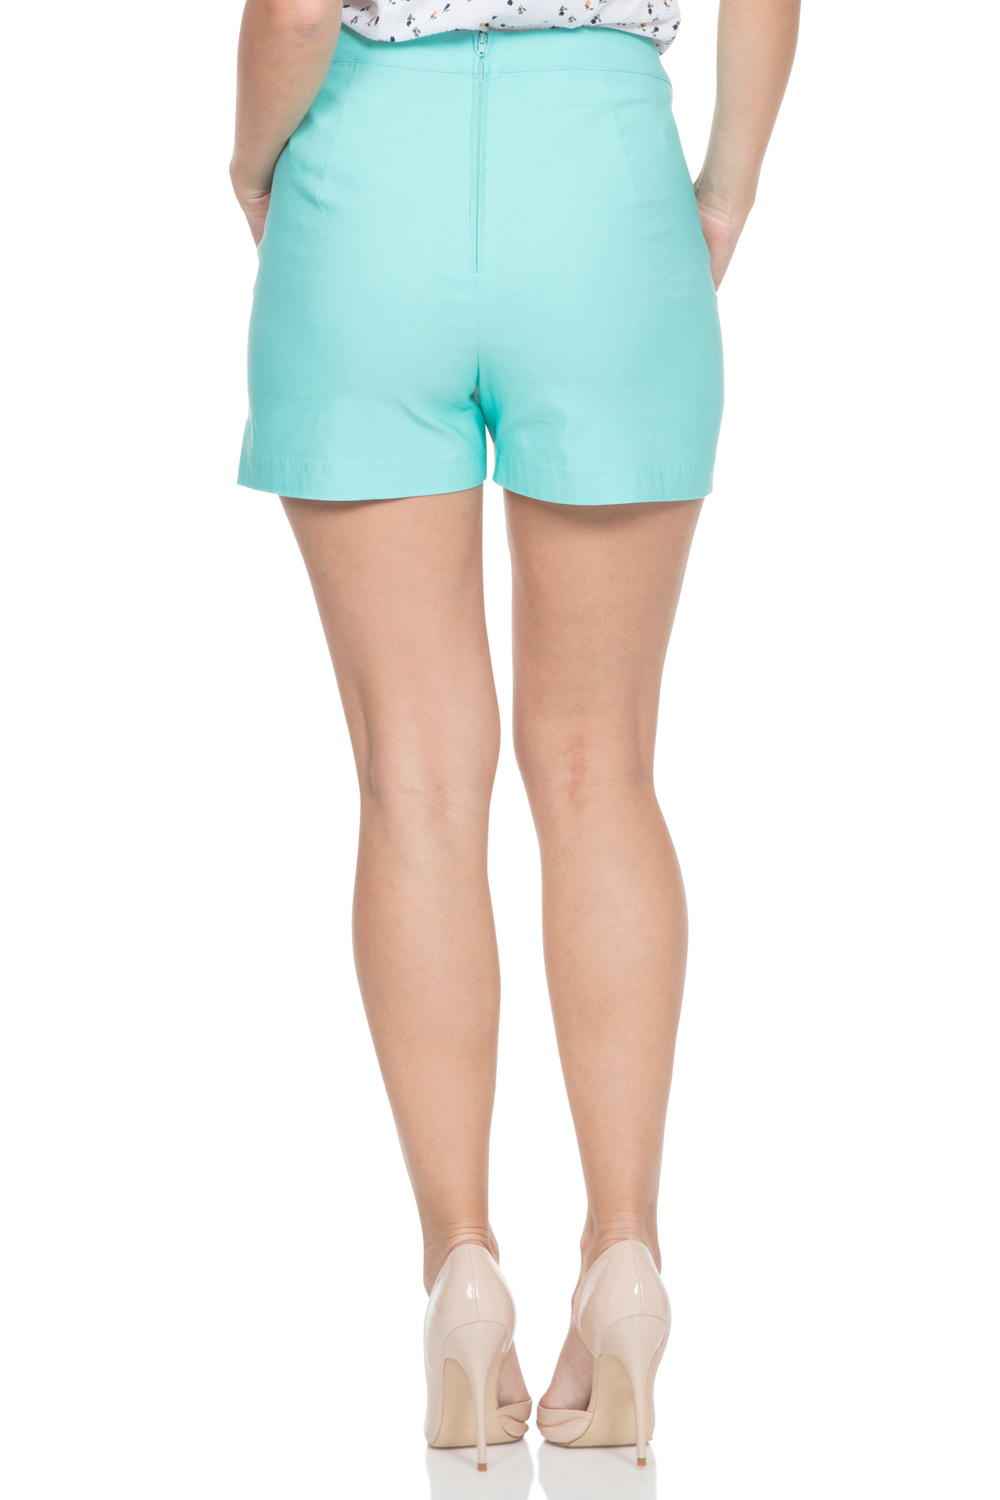 Evie High Waist Green Shorts